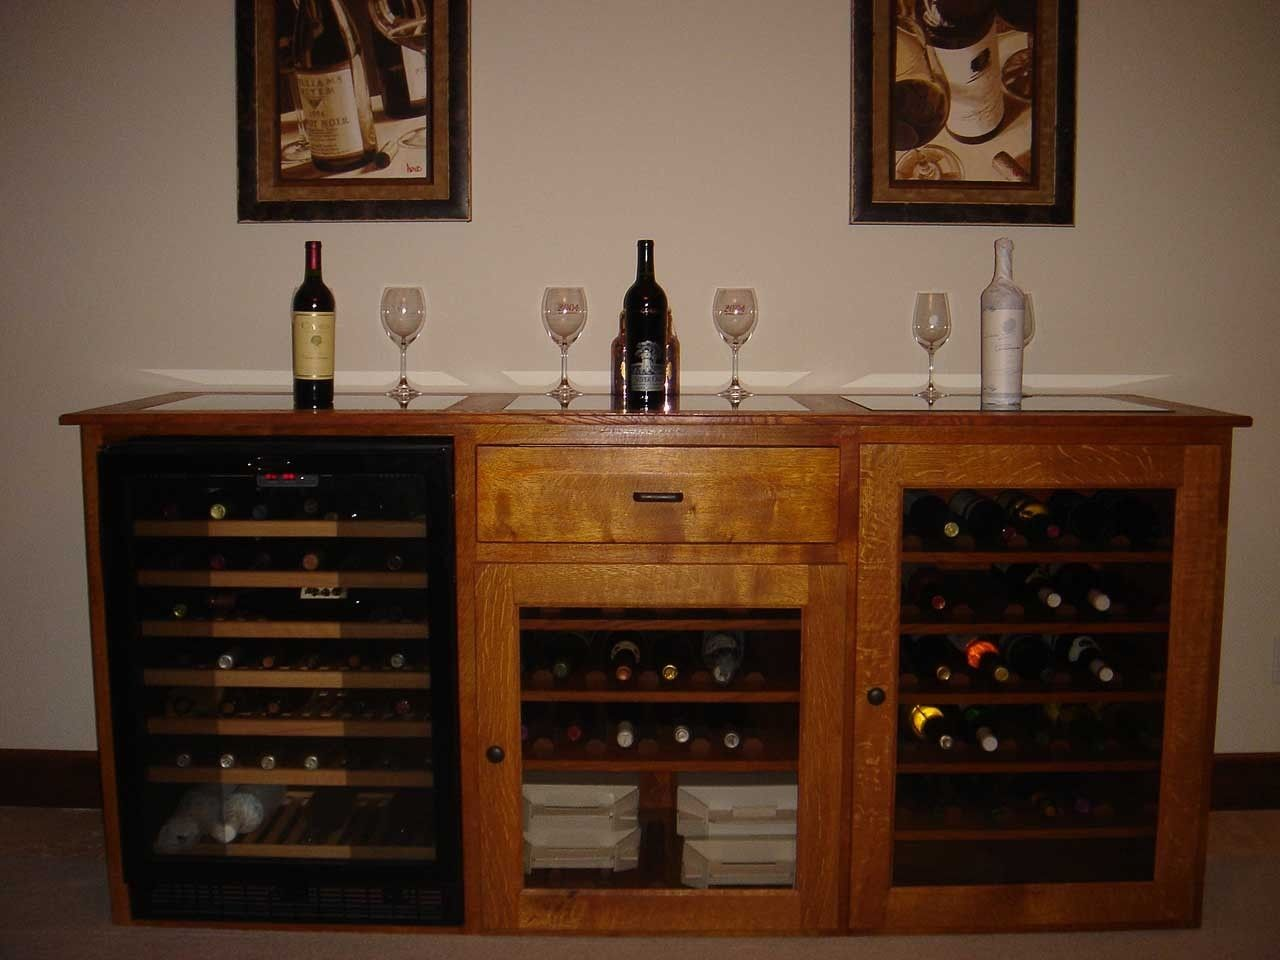 Built in wine racks for kitchen cabinets - This Quarter Sawn White Oak Wine Cabinet Is Built In The Clic